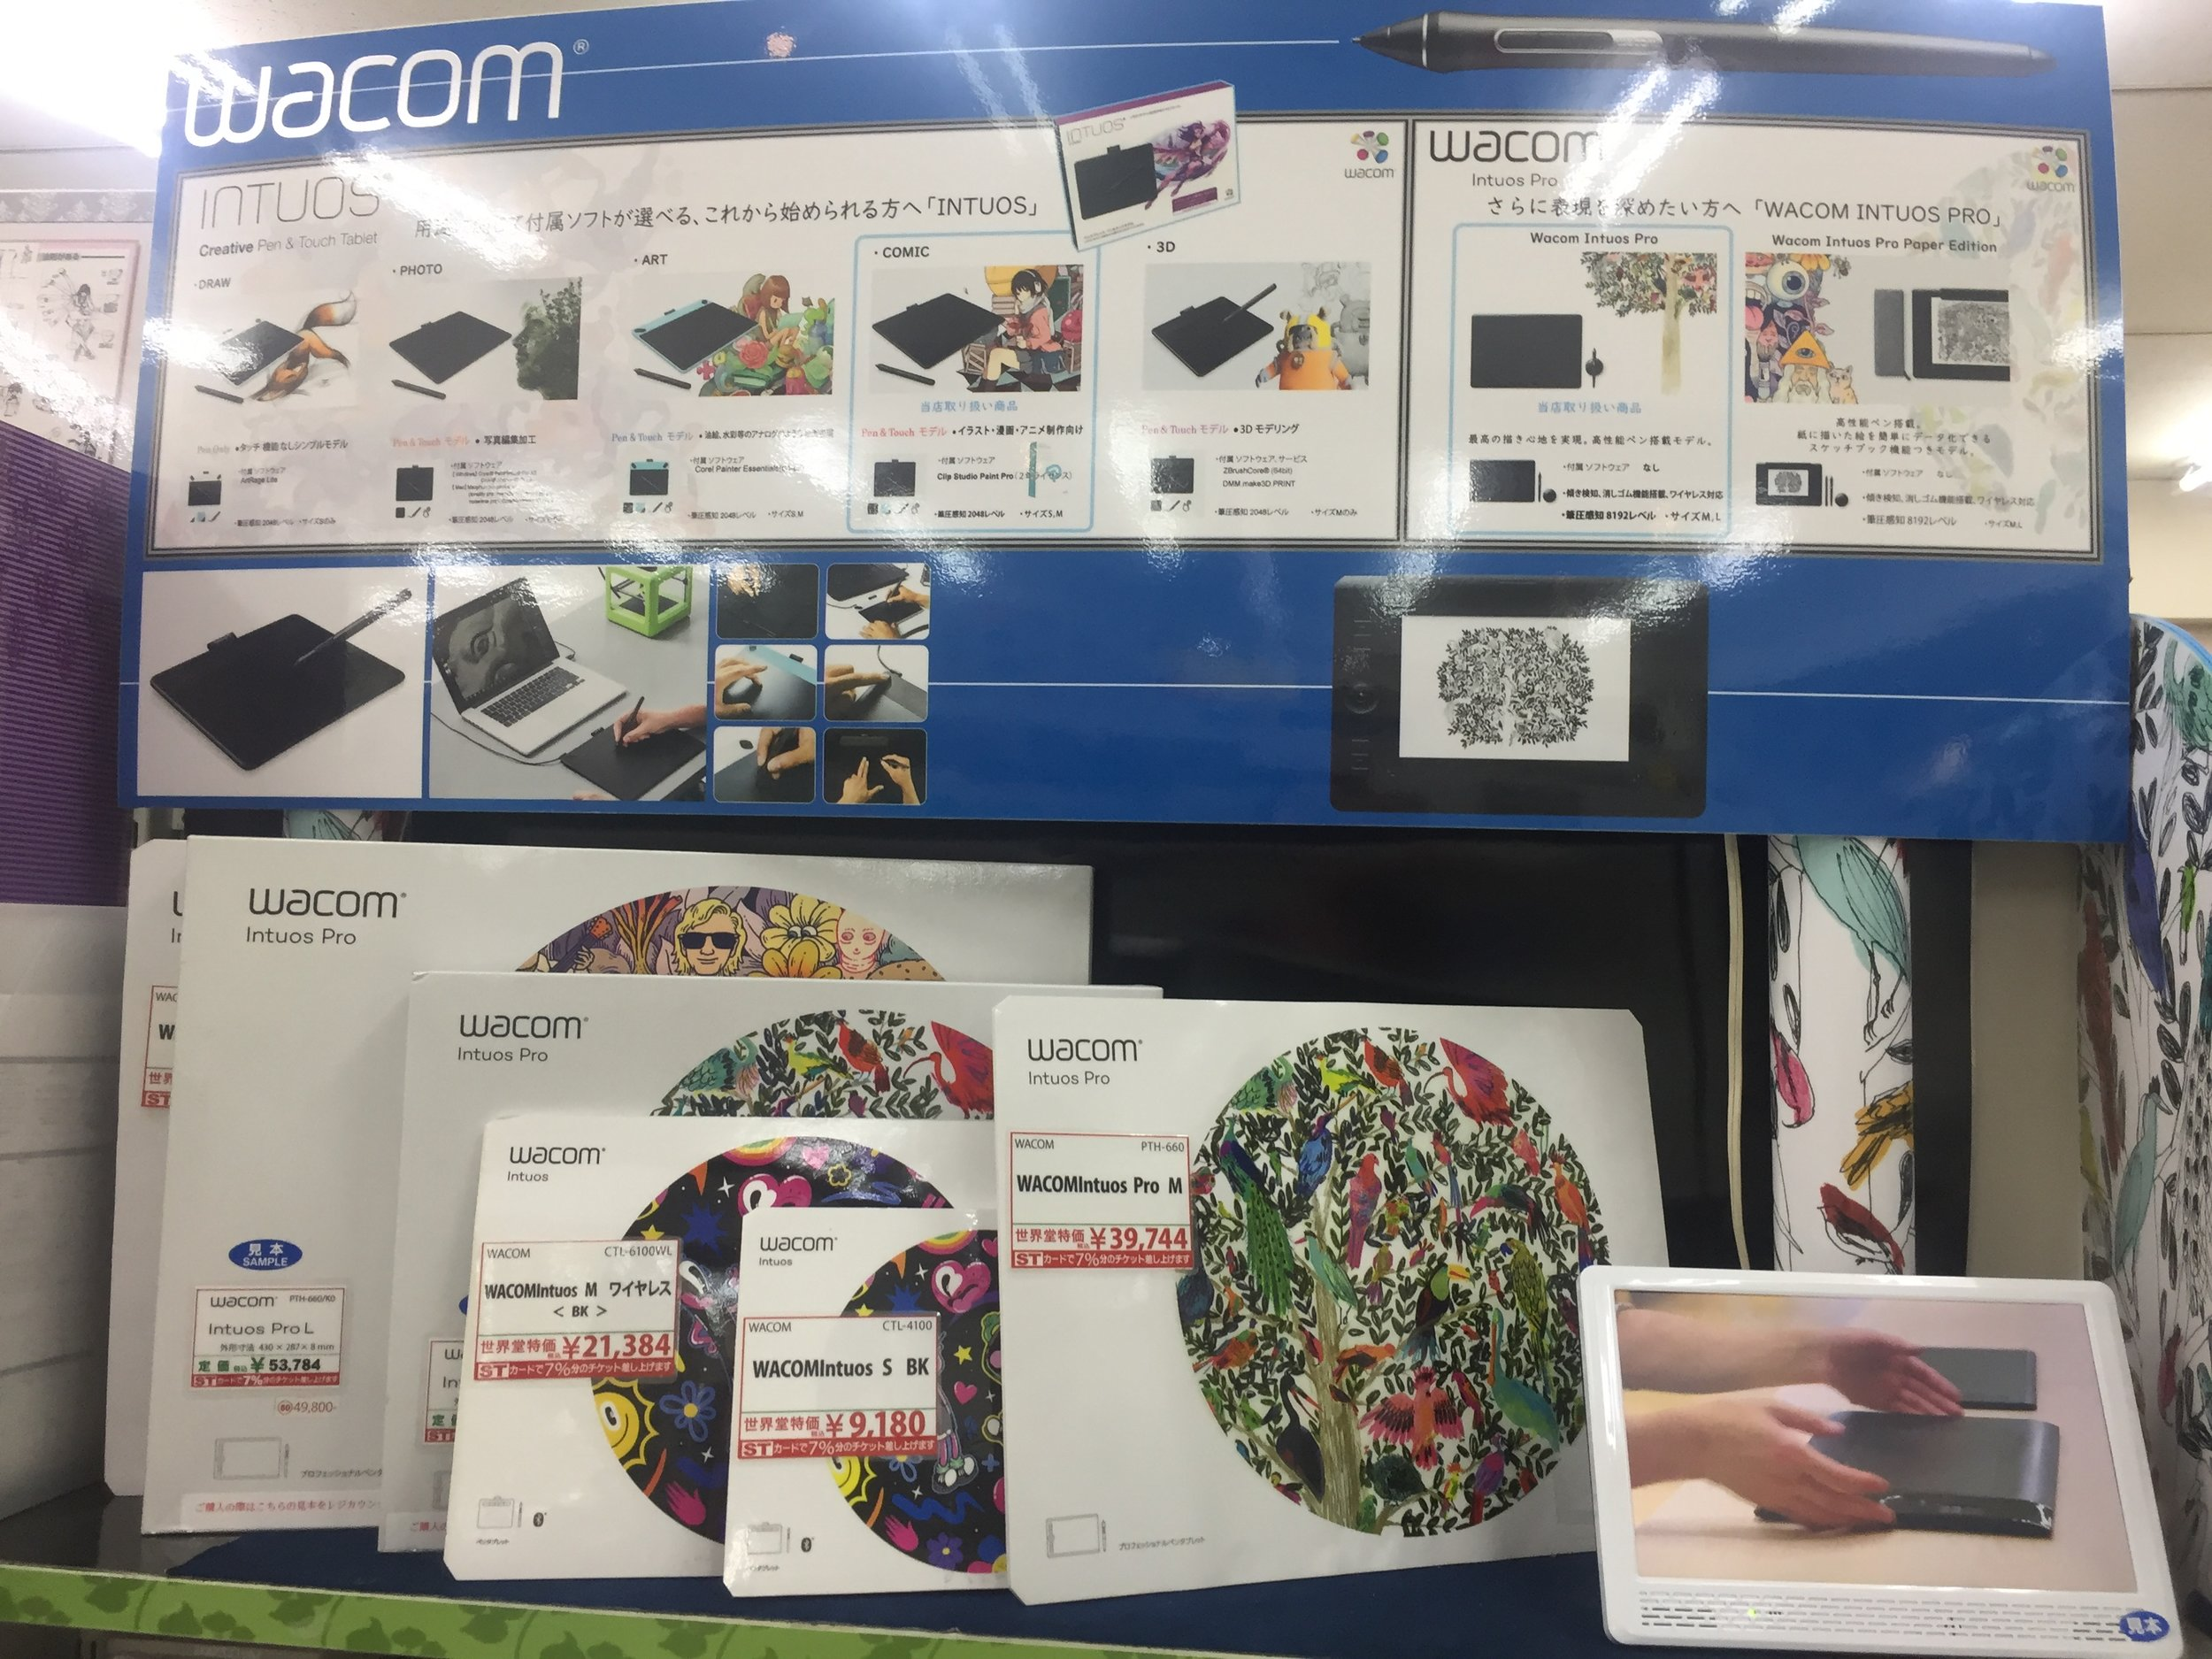 wacom tablet display at sekaido shinjuku japan.JPG